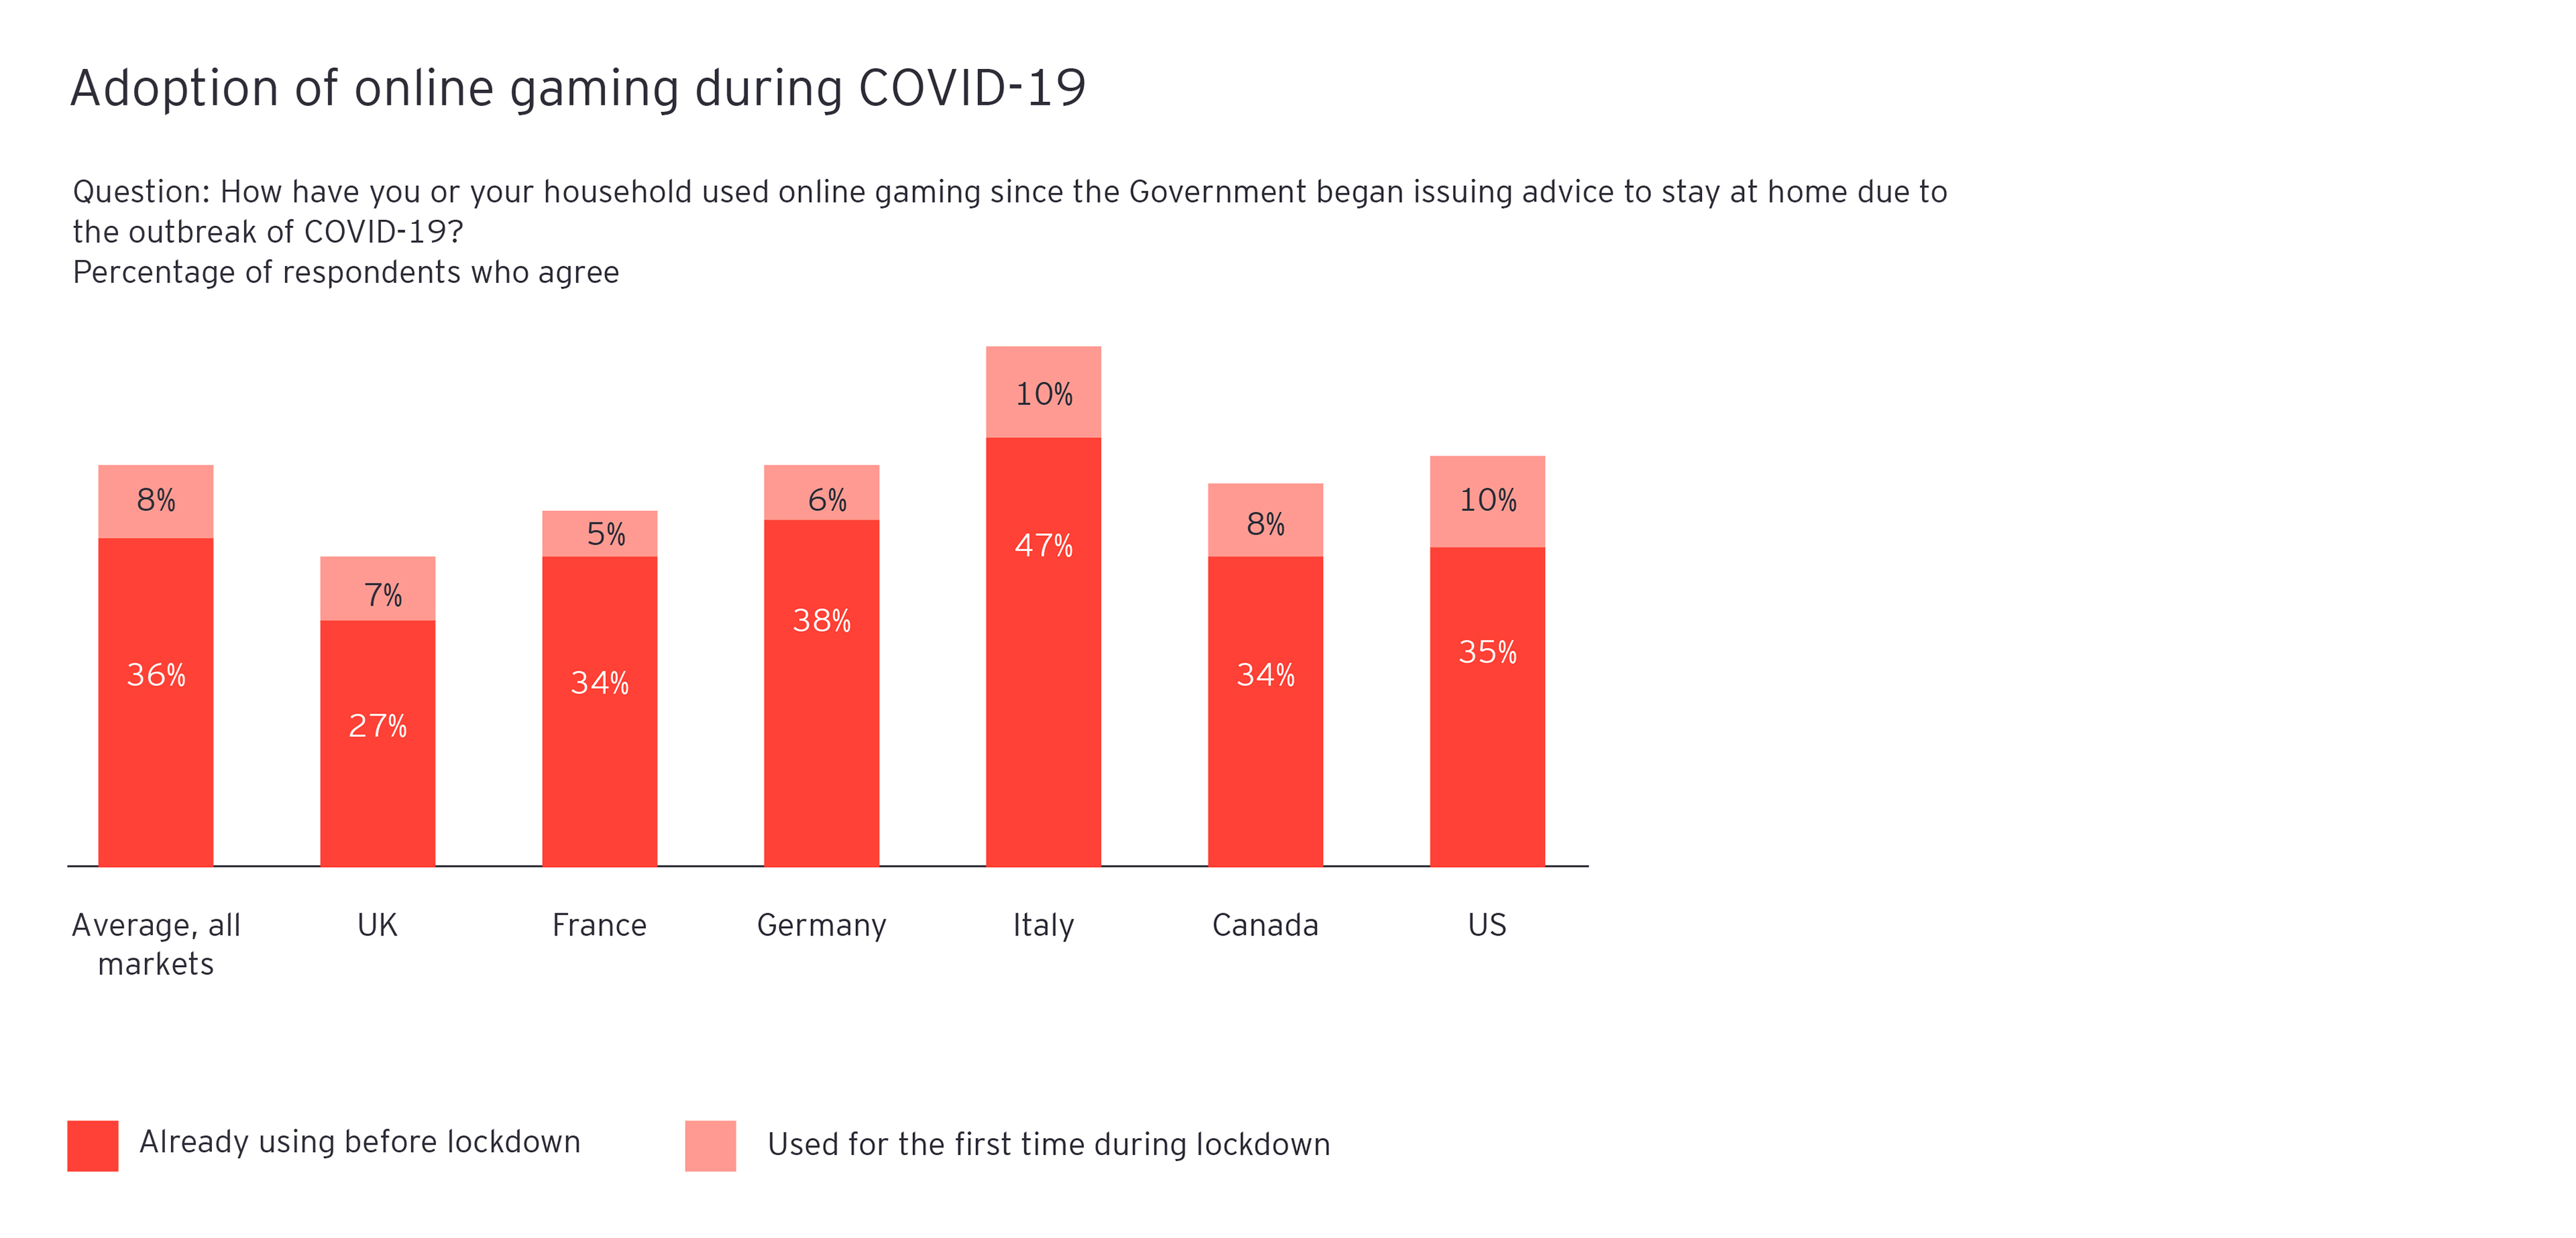 Adoption of online gaming during COVID-19